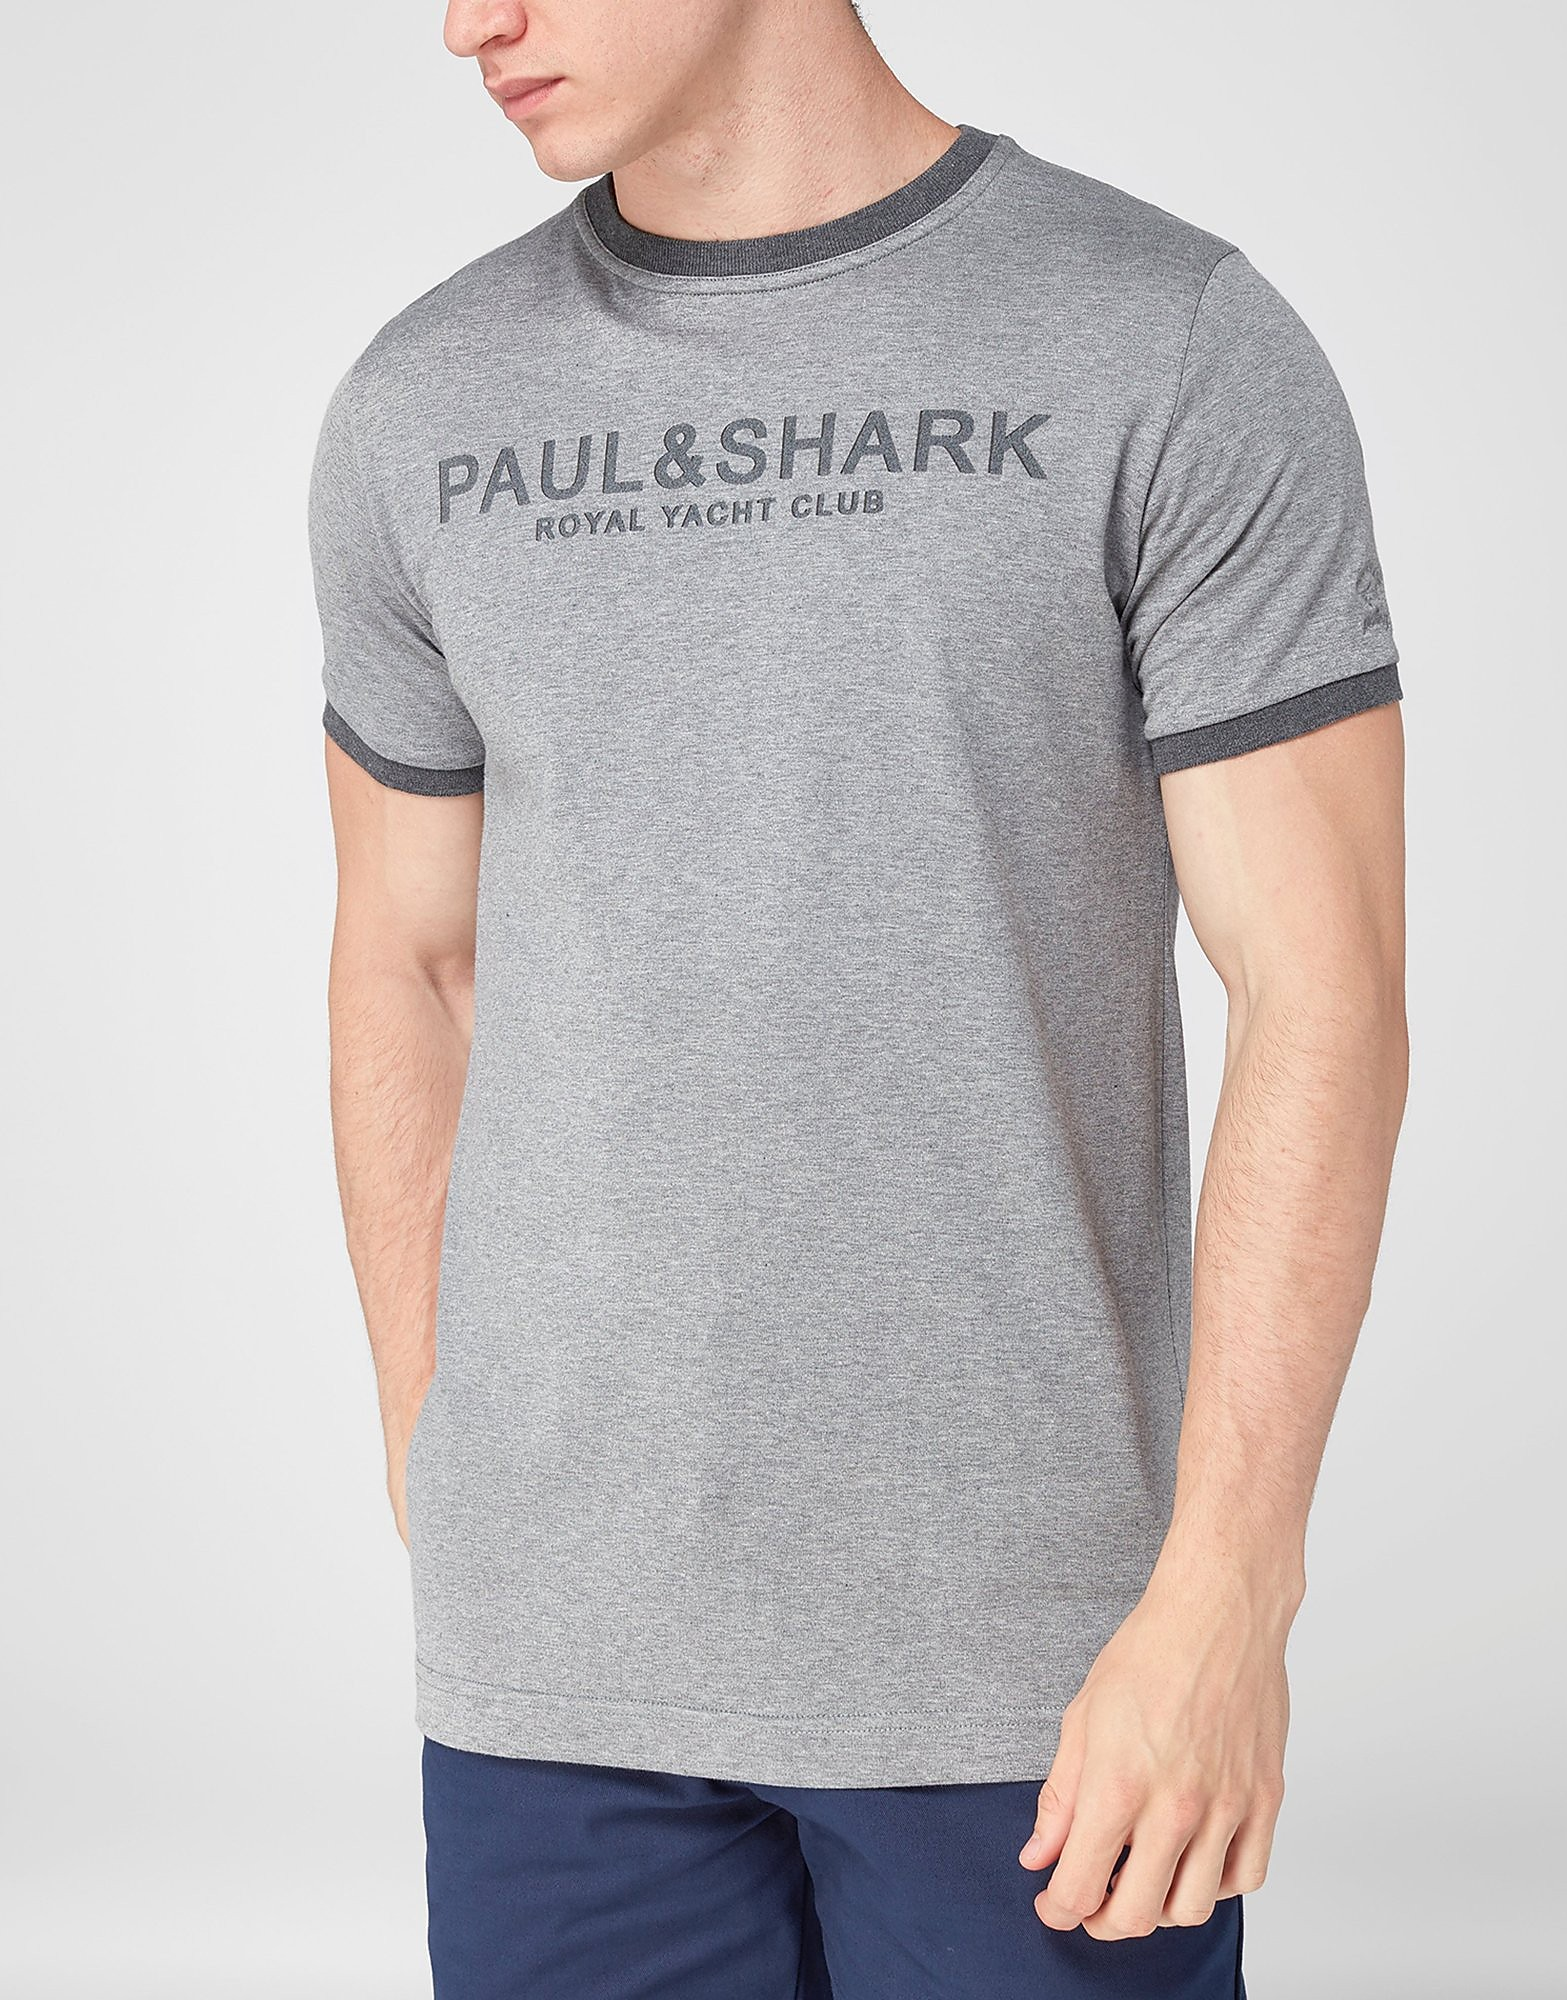 Paul and Shark Premium Crew T-Shirt